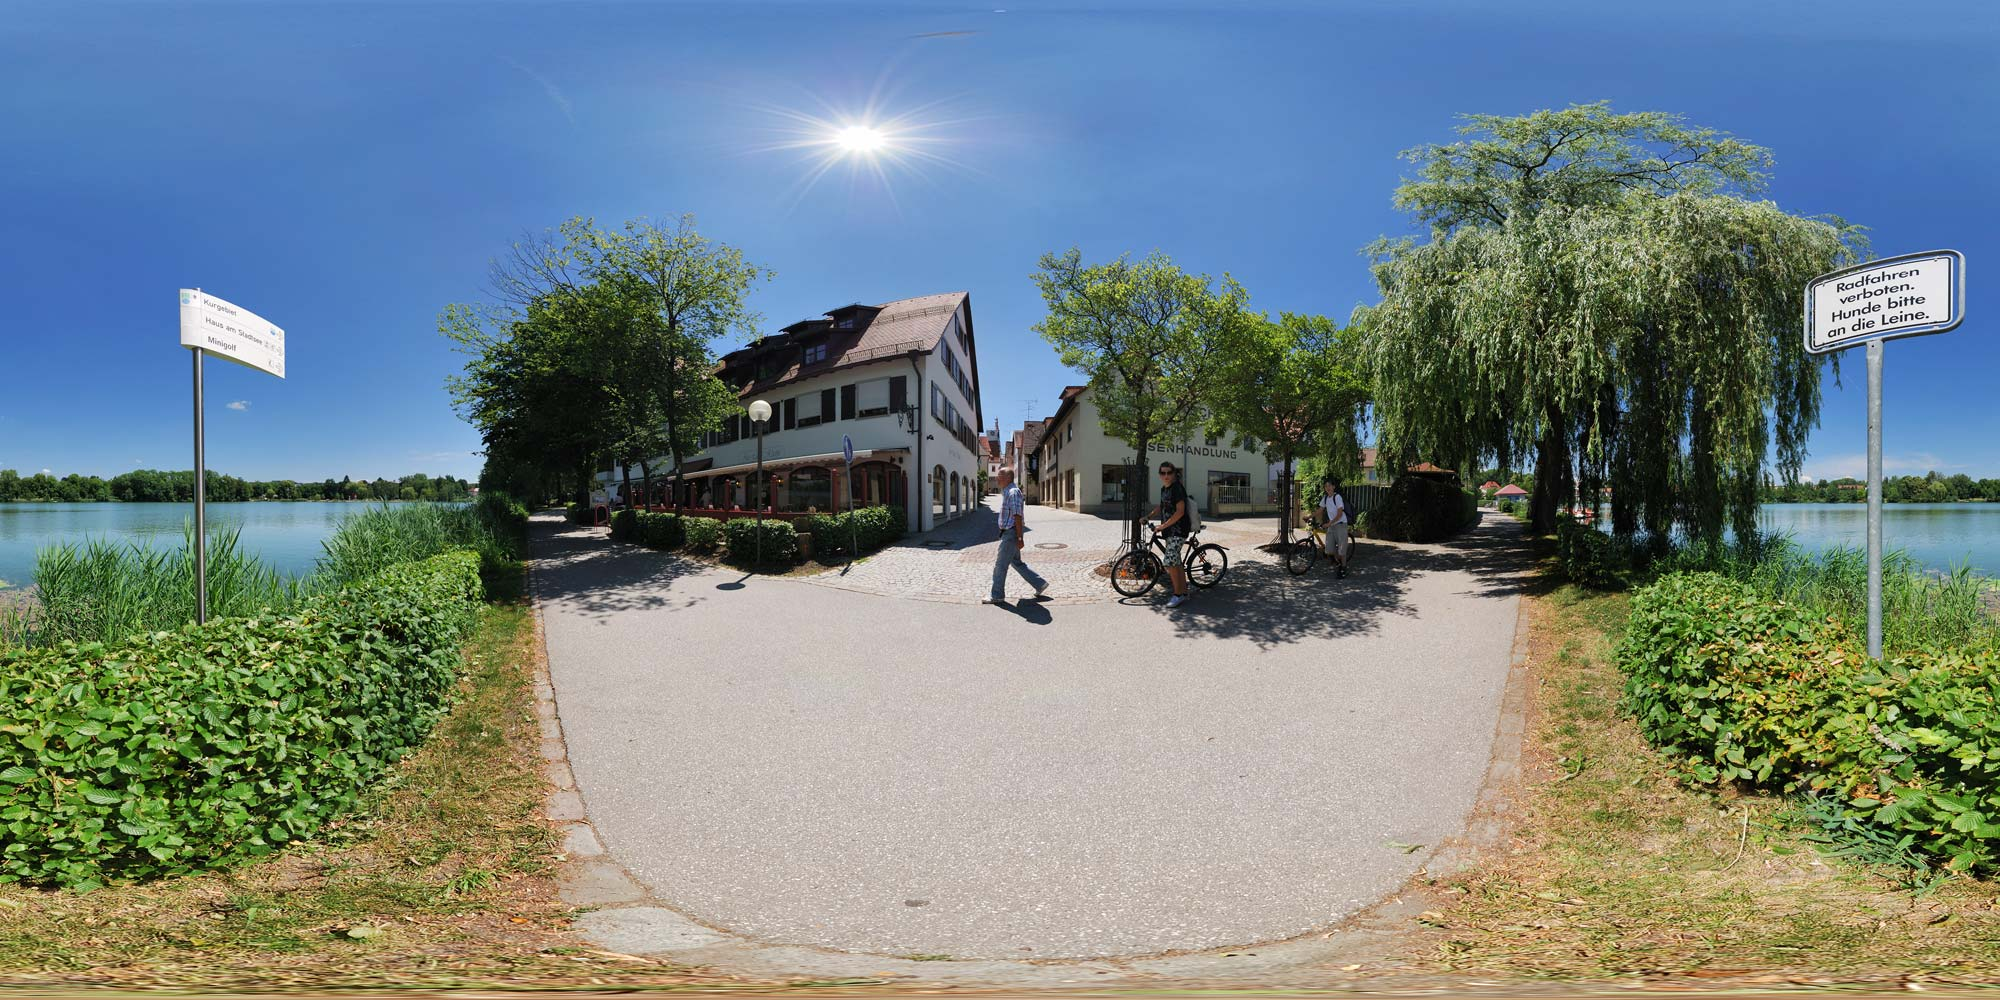 Panorama  Bad Waldsee - Am Stadtsee